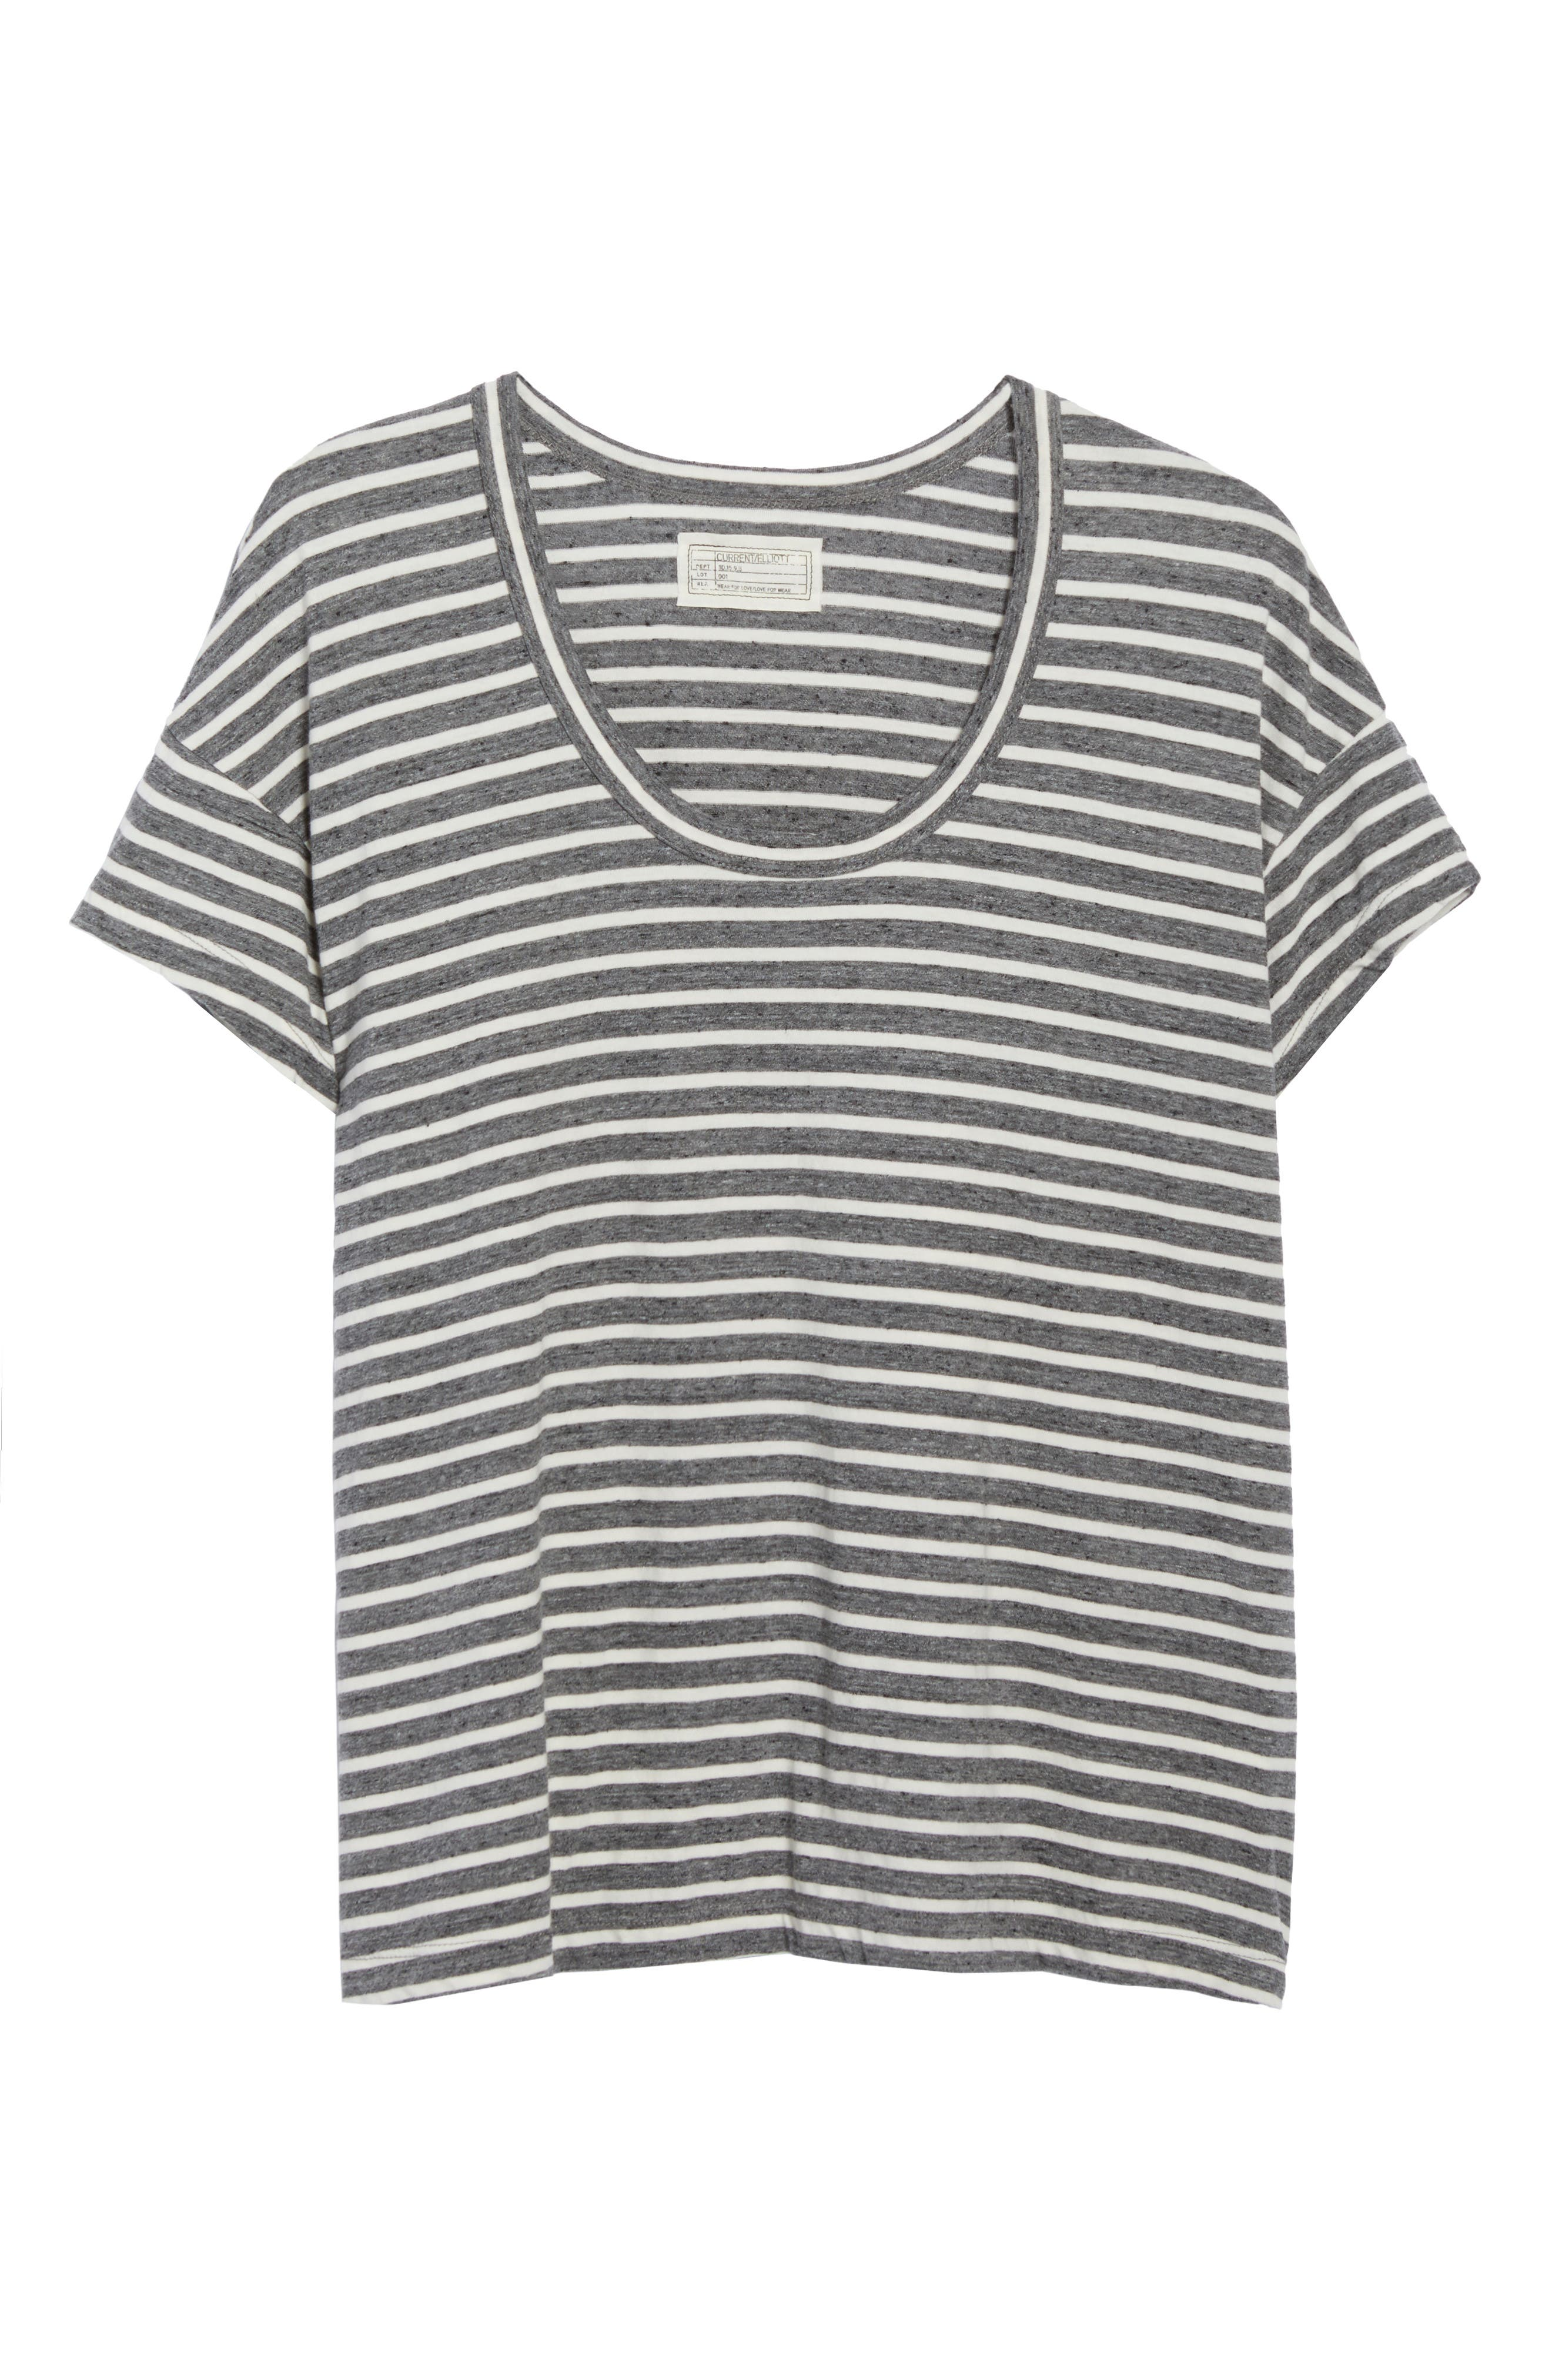 Stripe Slouchy Tee,                             Alternate thumbnail 6, color,                             Charcoal Anchor Stripe